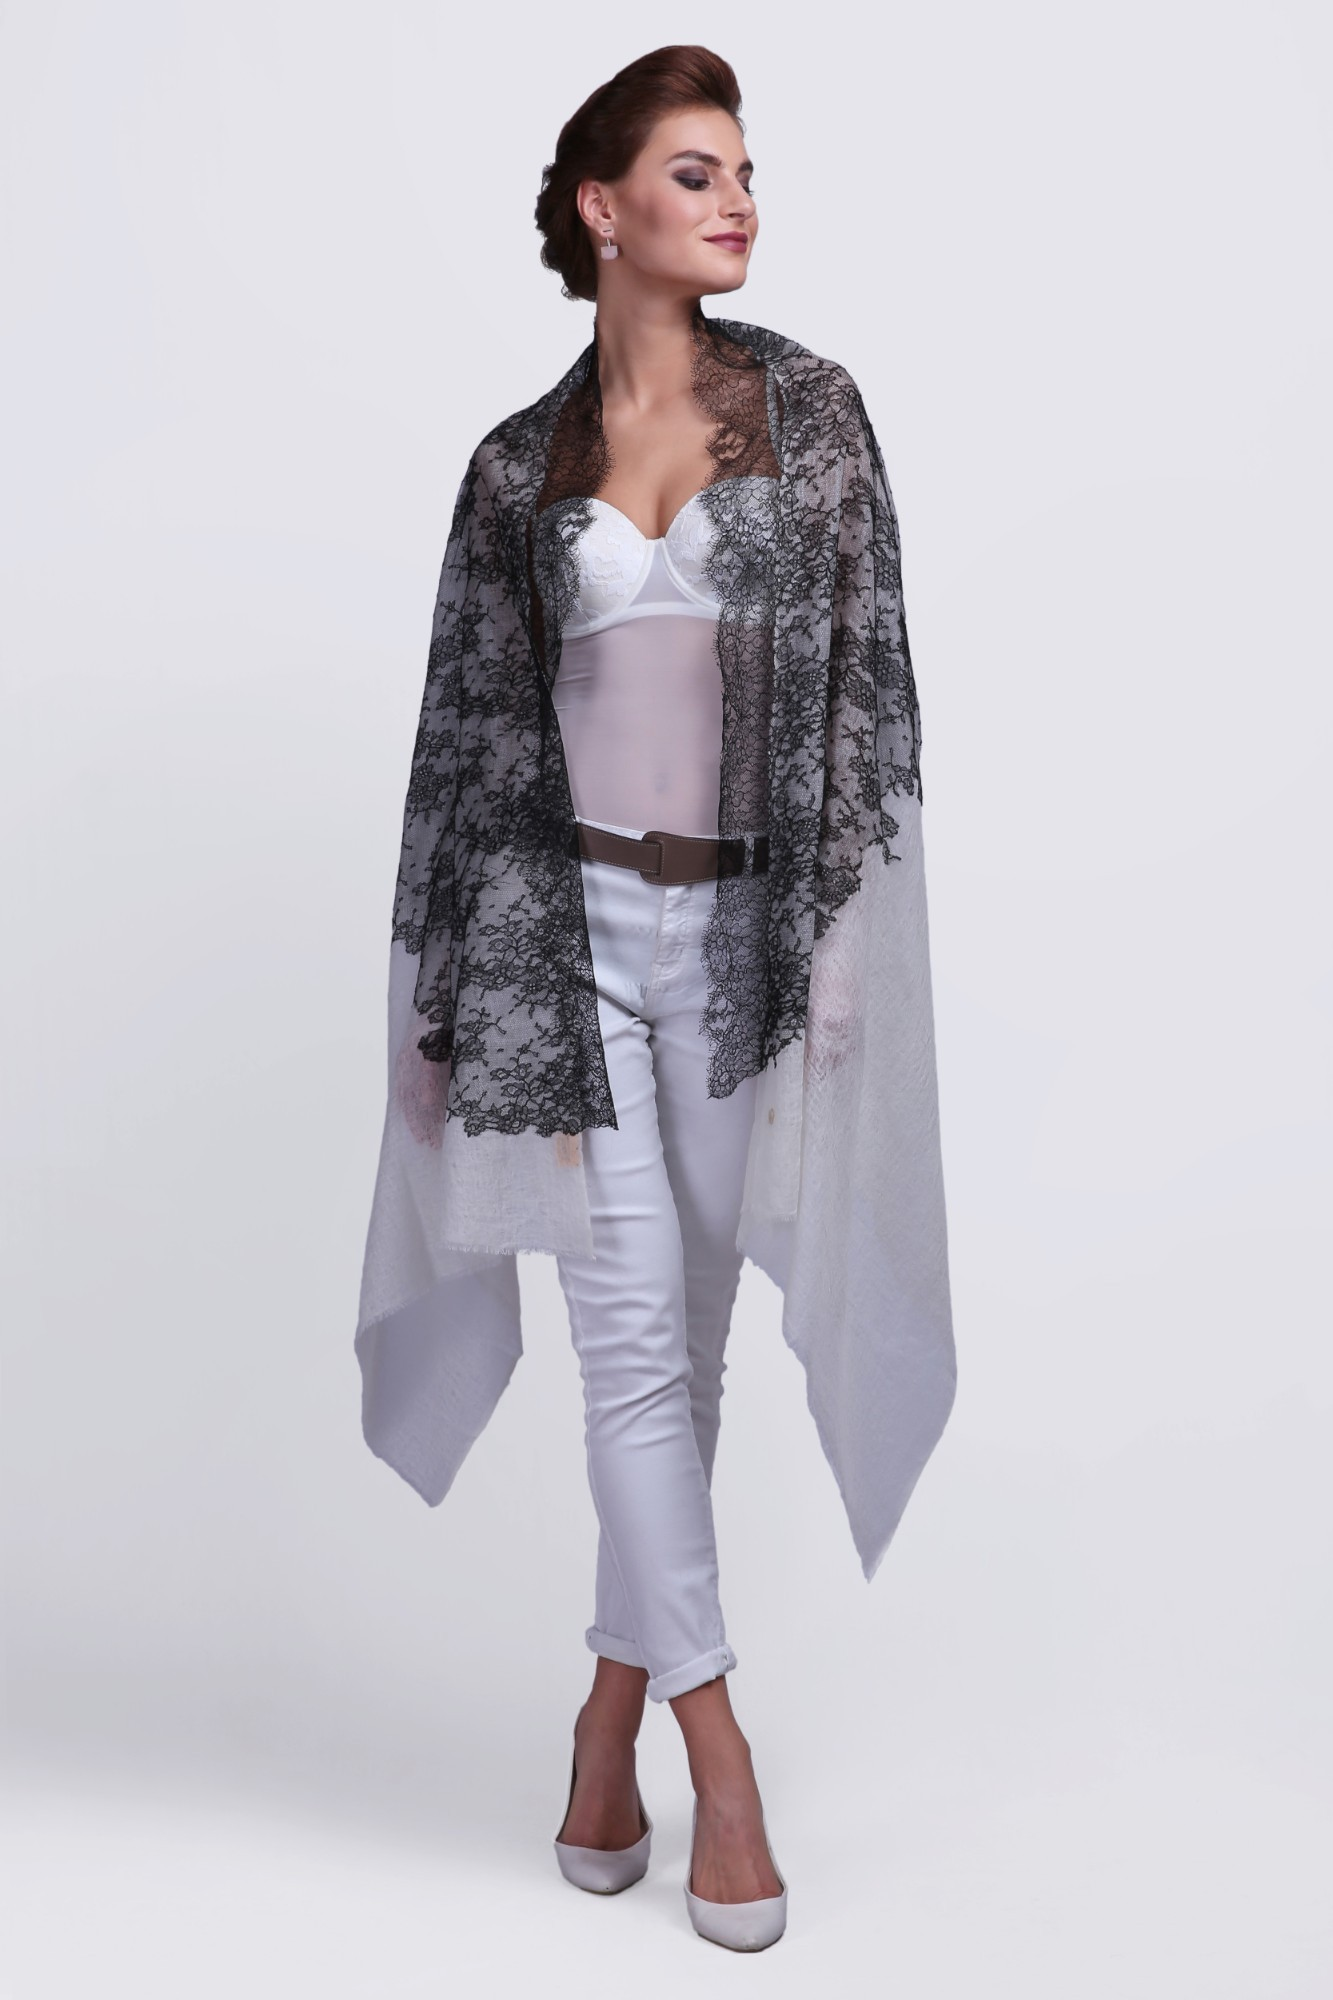 Woven Cashmere Scarf with French Lace - VS 12164A Ivory/Black